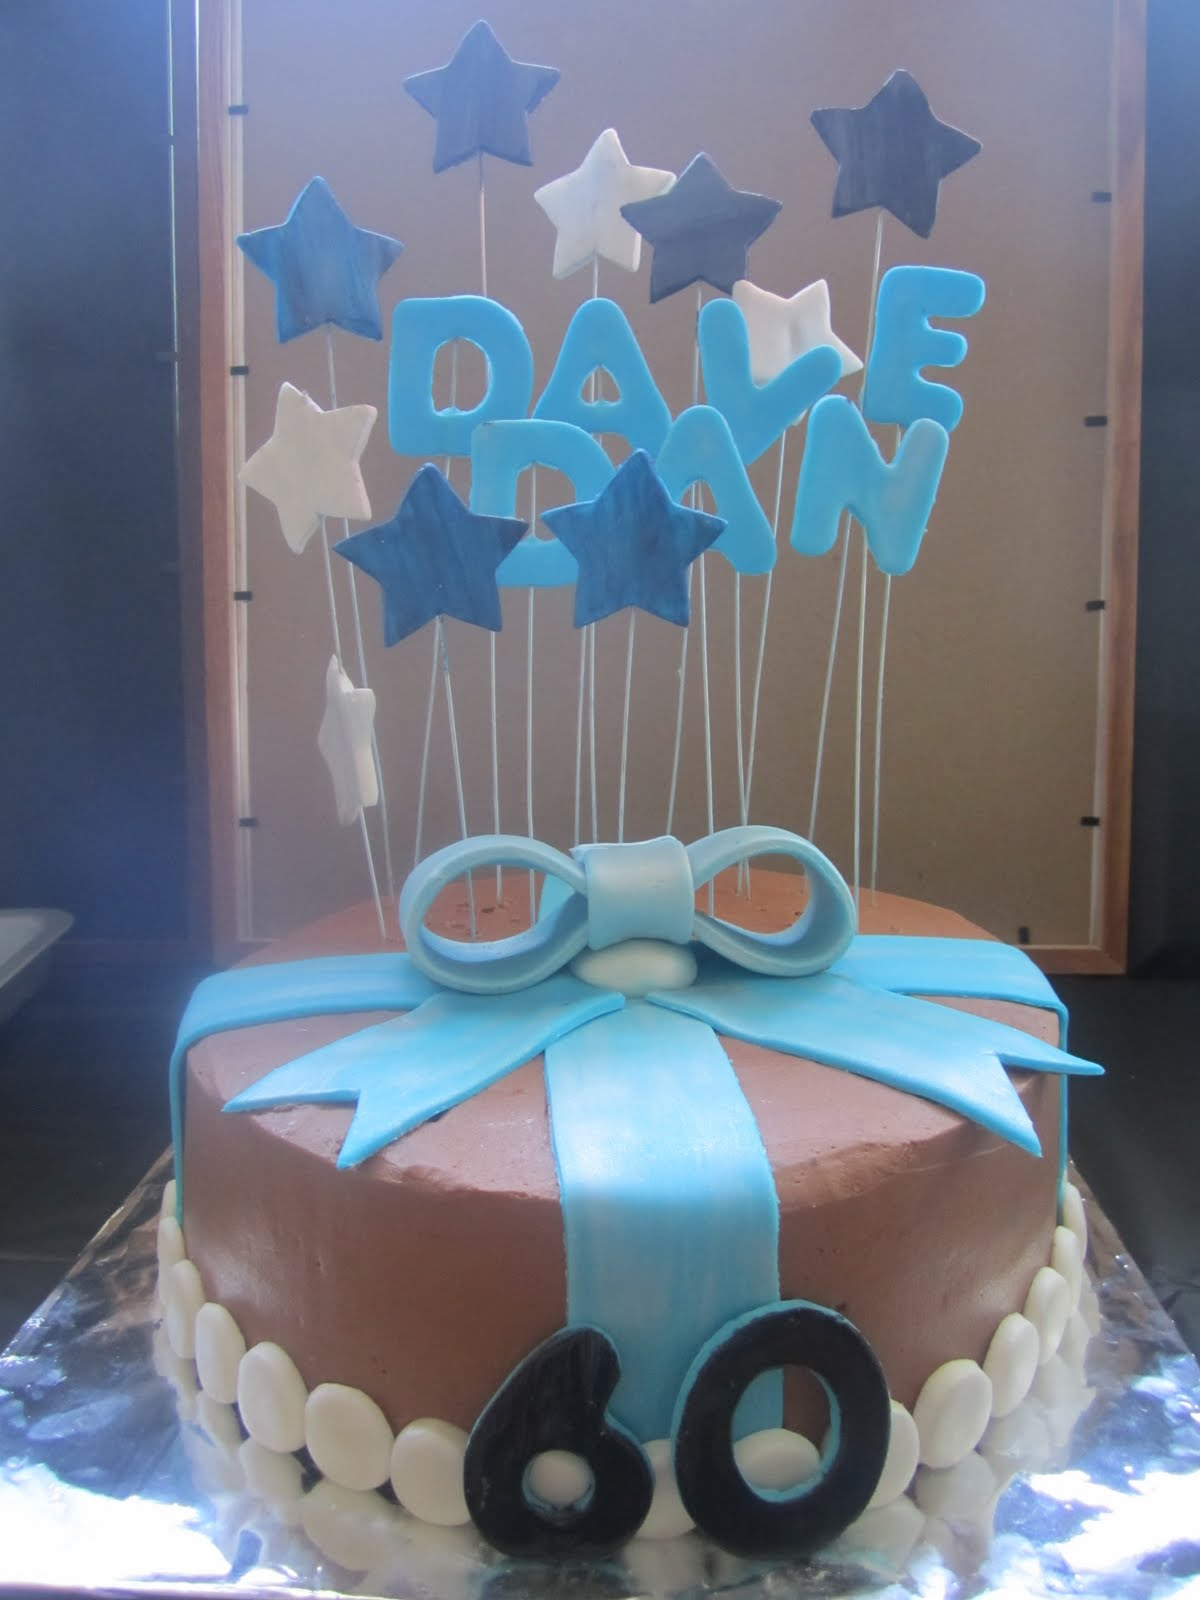 60th Birthday Cake For Daddy Image Inspiration of Cake and